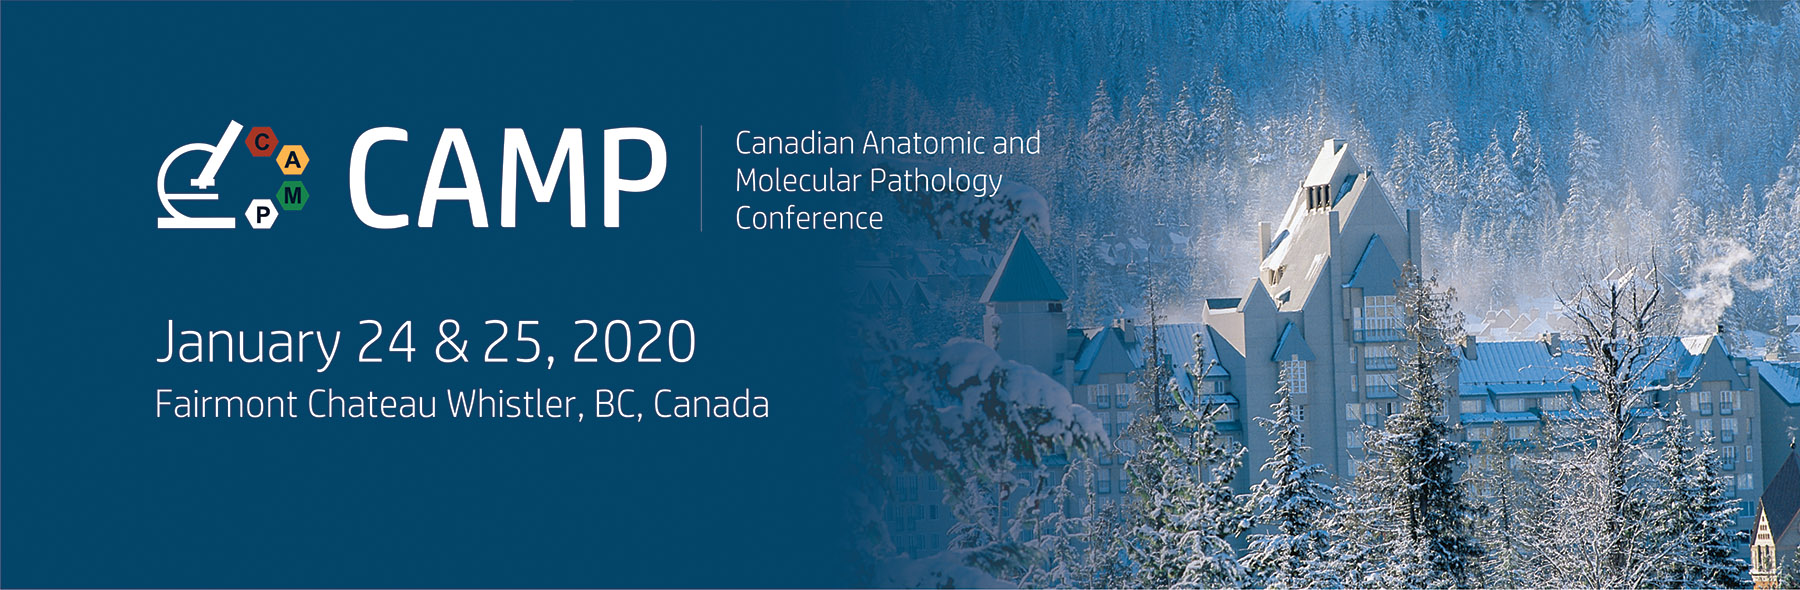 Canadian Anatomic and Molecular Pathology Conference. Fairmount Chateau Whistler